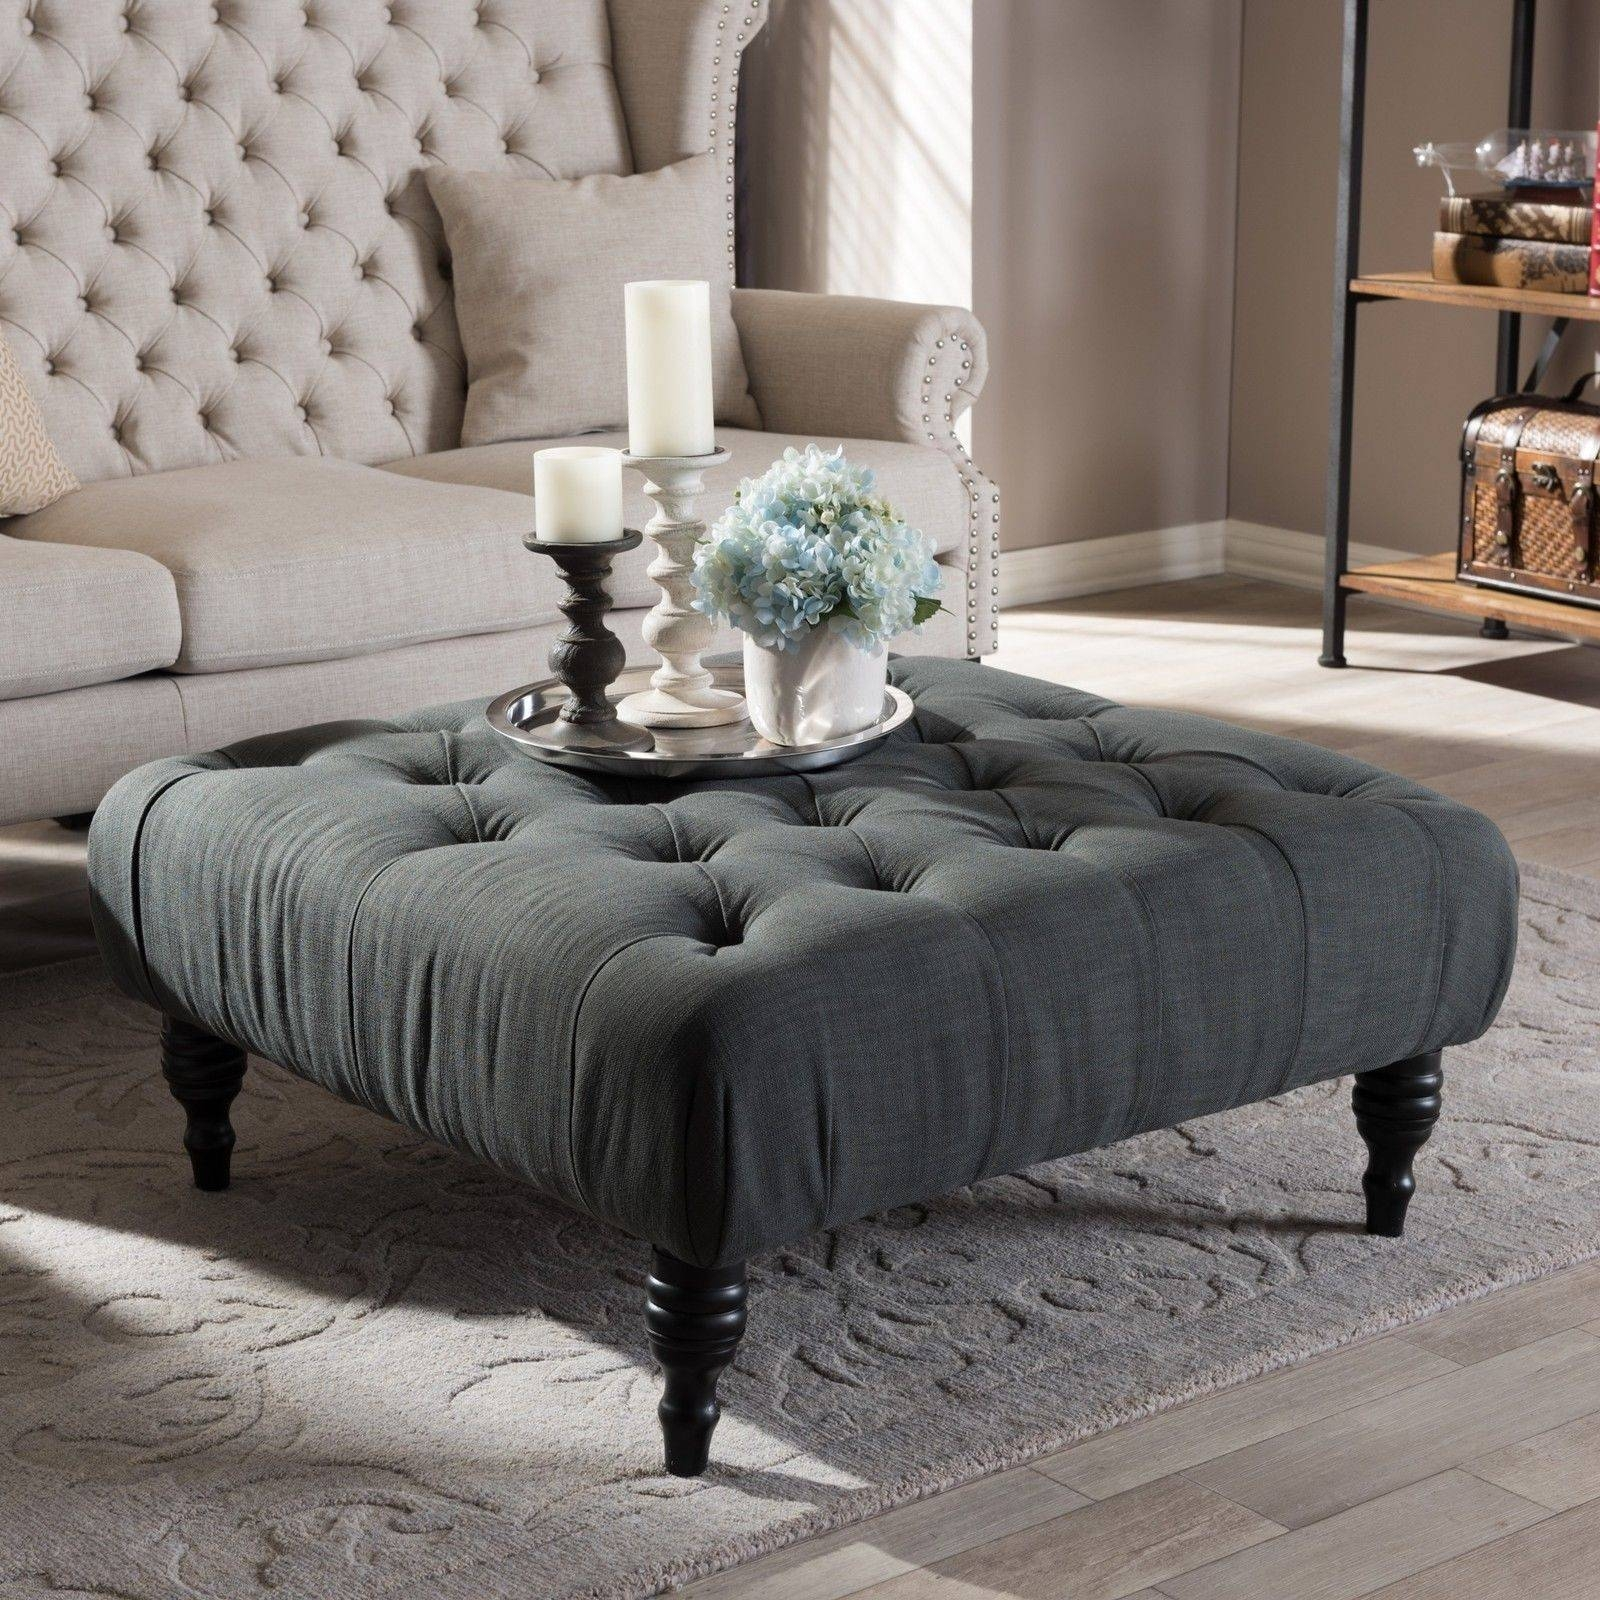 Living Room Furniture-Tufted Linen Ottoman-Footstool Footrest inside Coffee Table Footrests (Image 22 of 30)